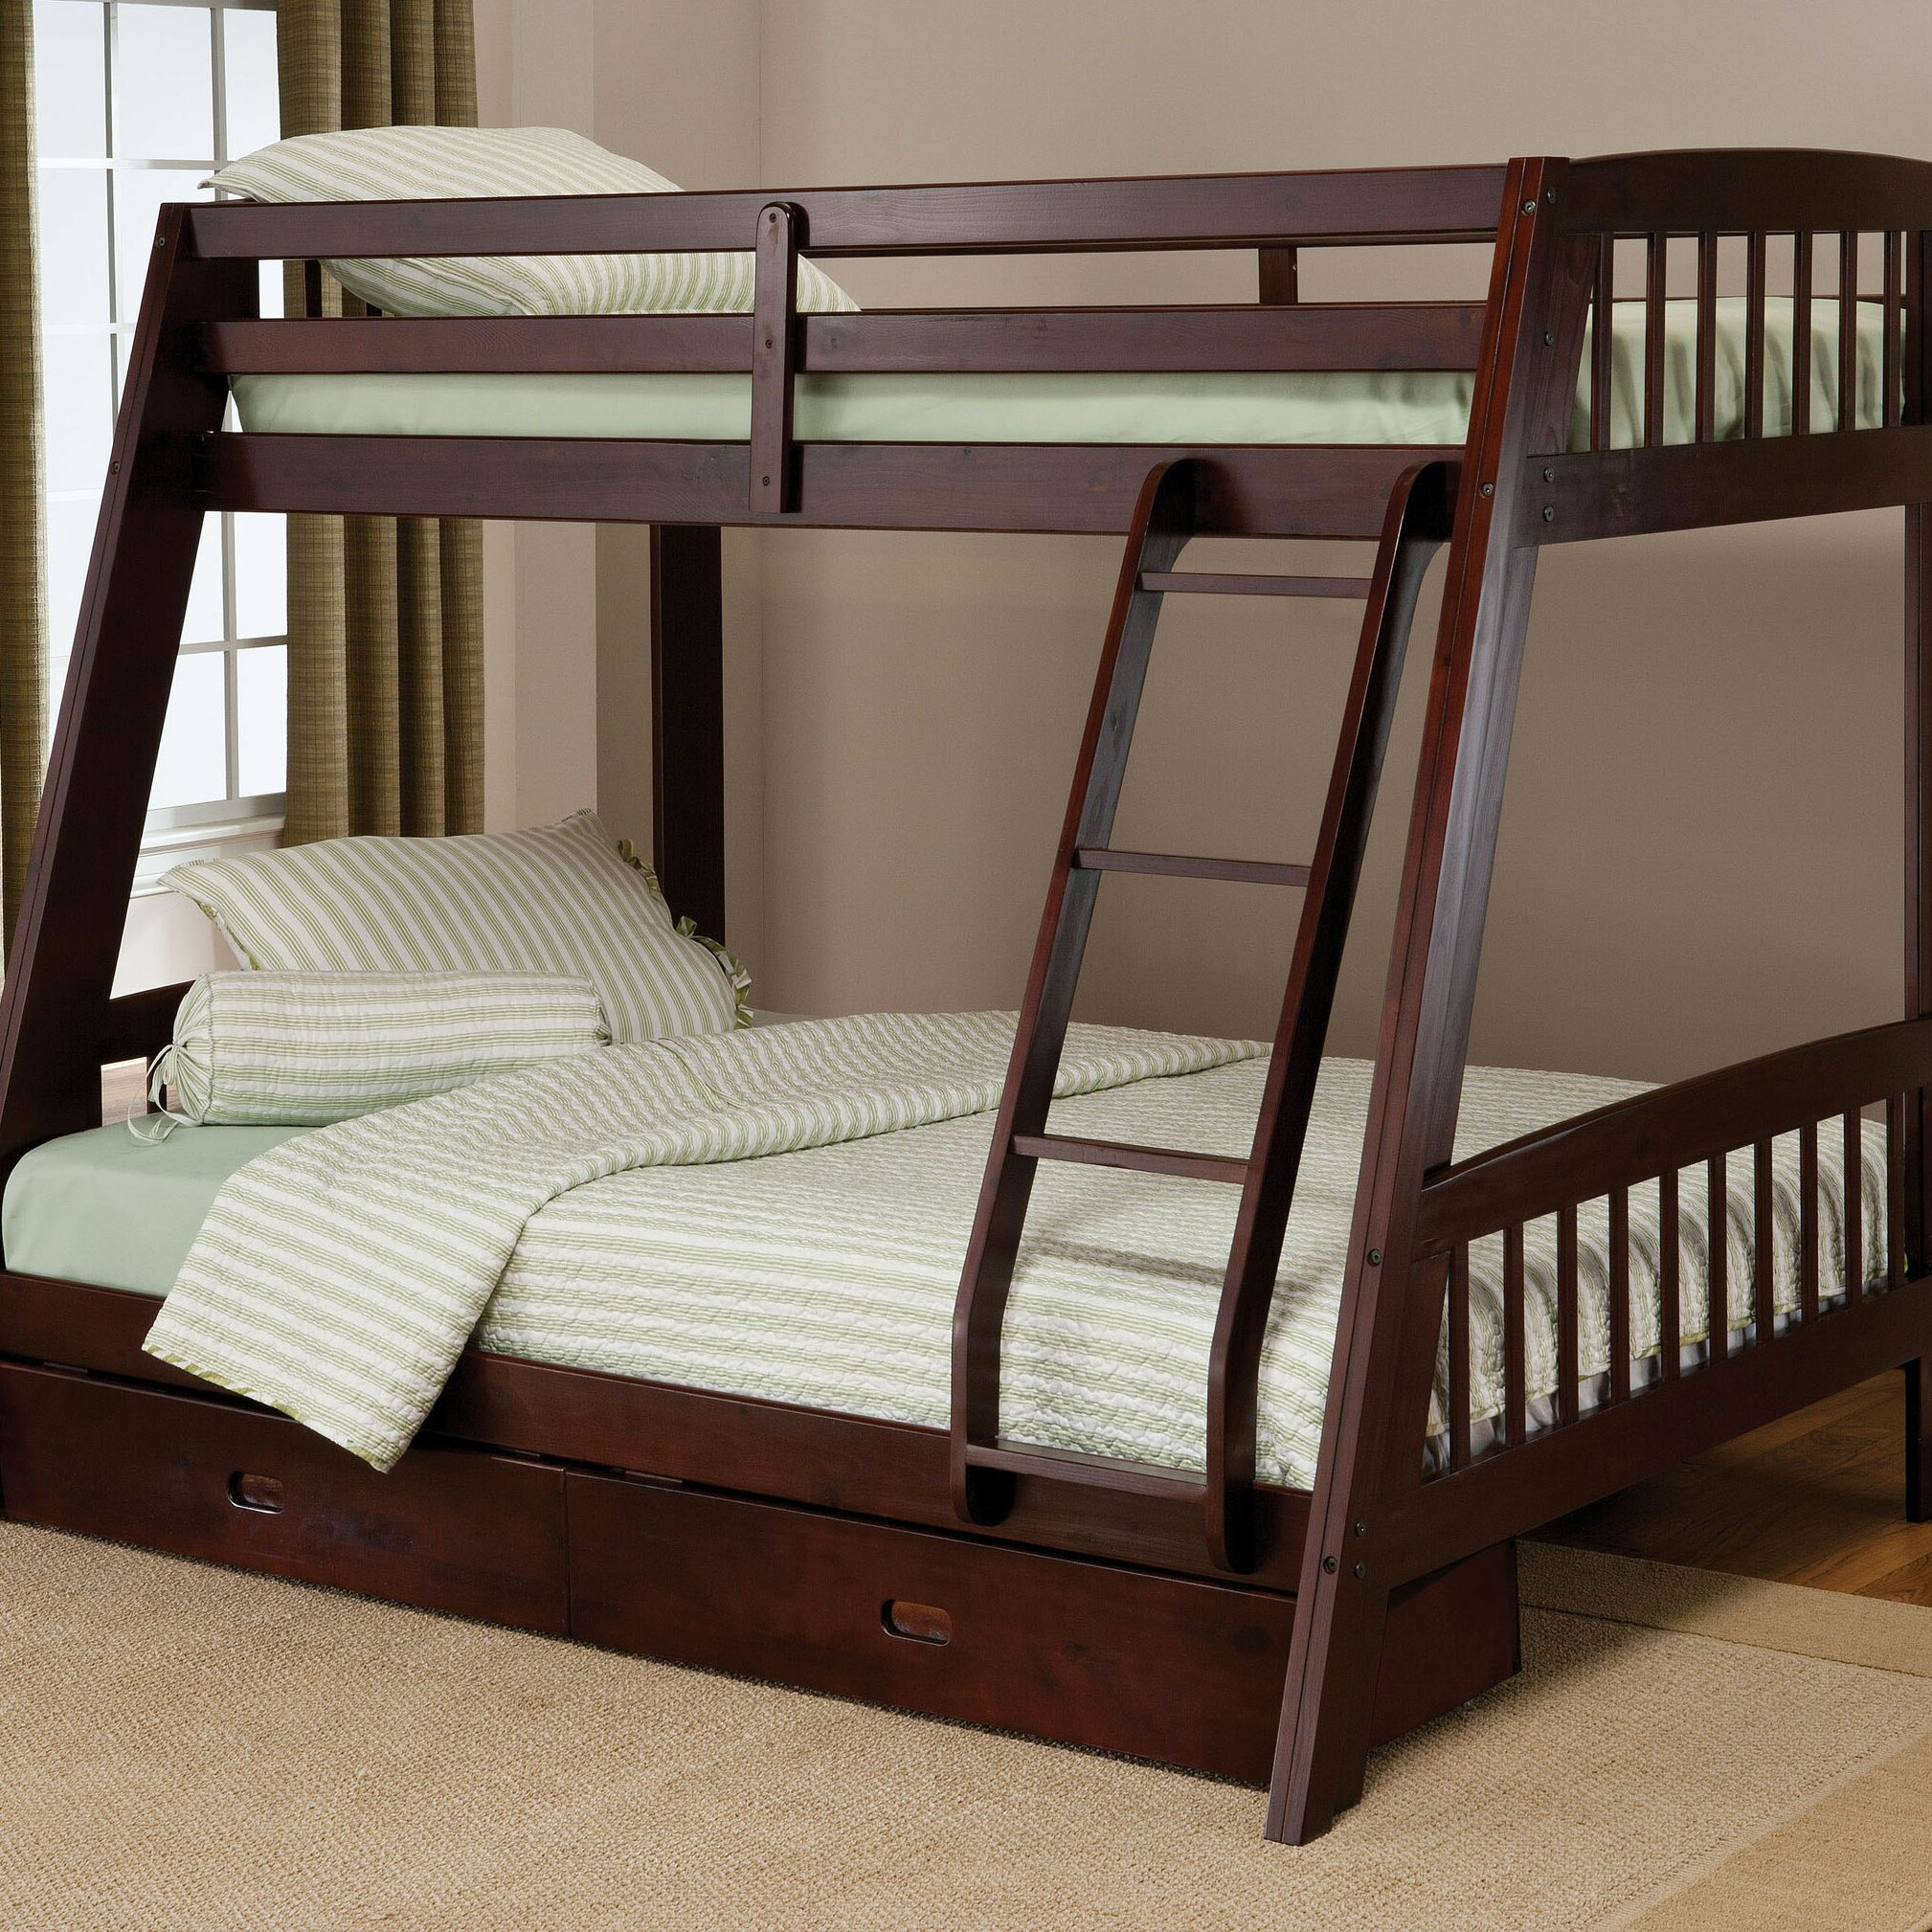 hillsdale rockdale twin over full bunk bed with storage reviews wayfair. Black Bedroom Furniture Sets. Home Design Ideas